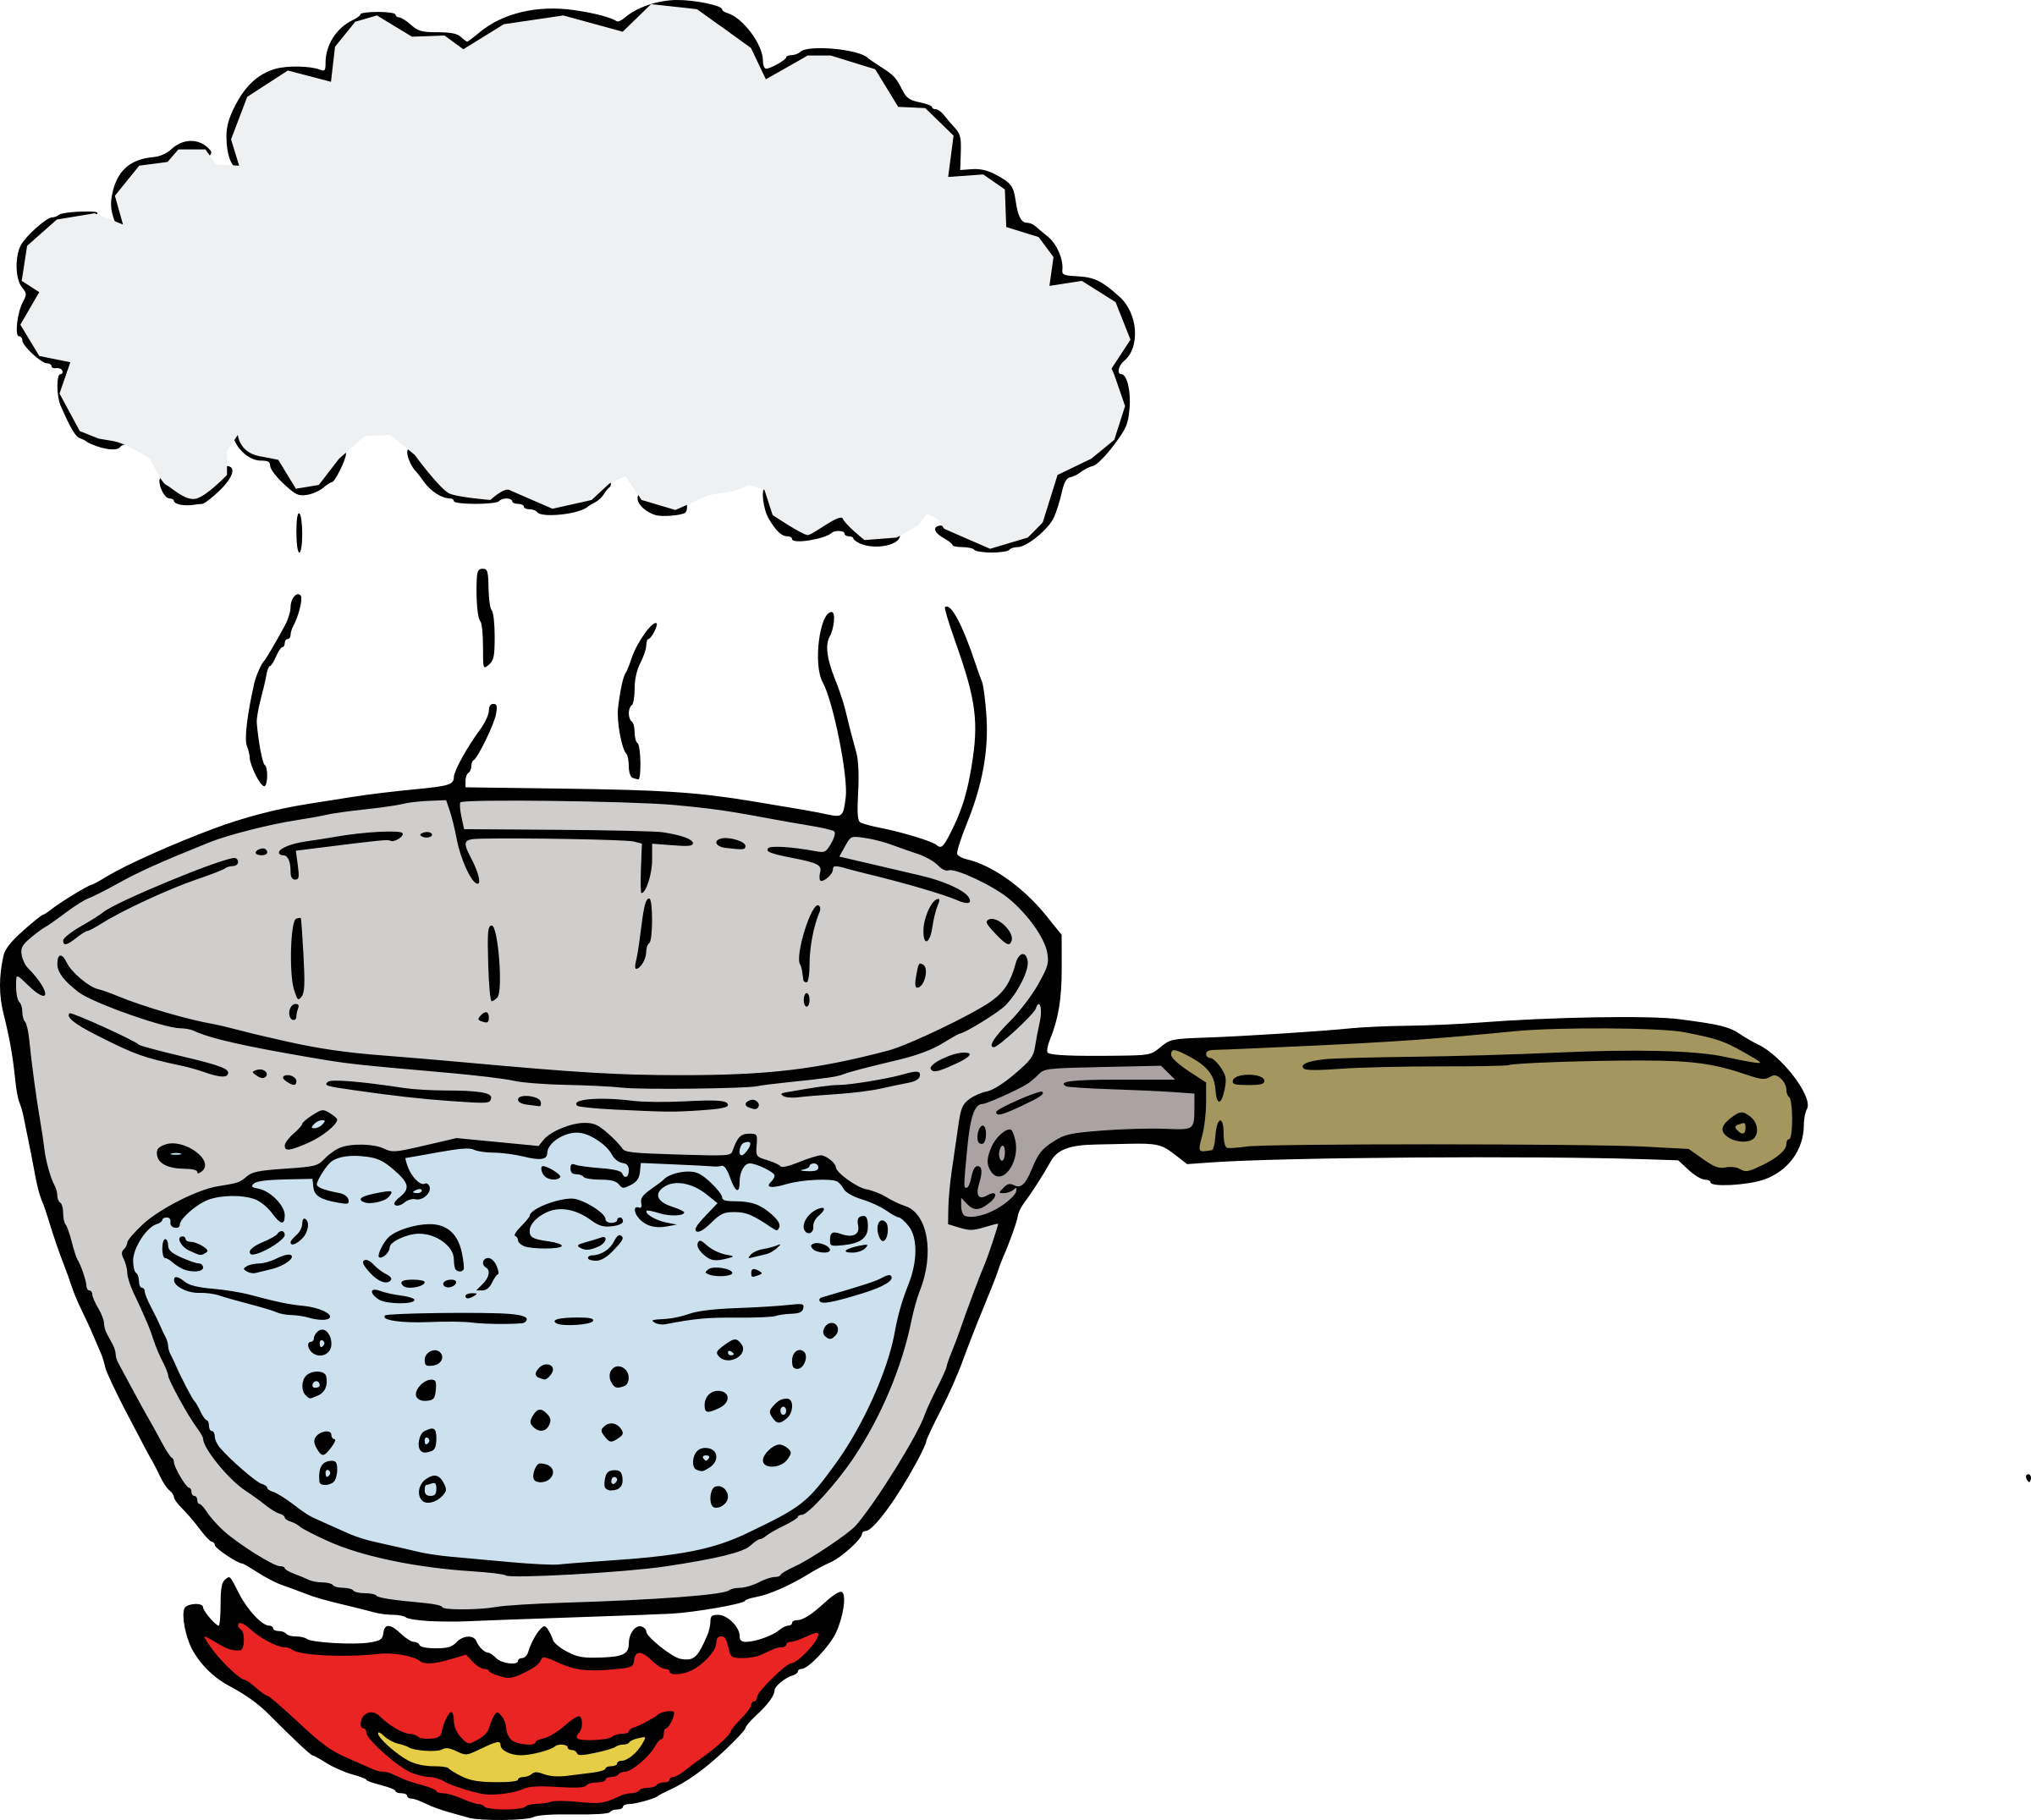 Steam of water clipart.